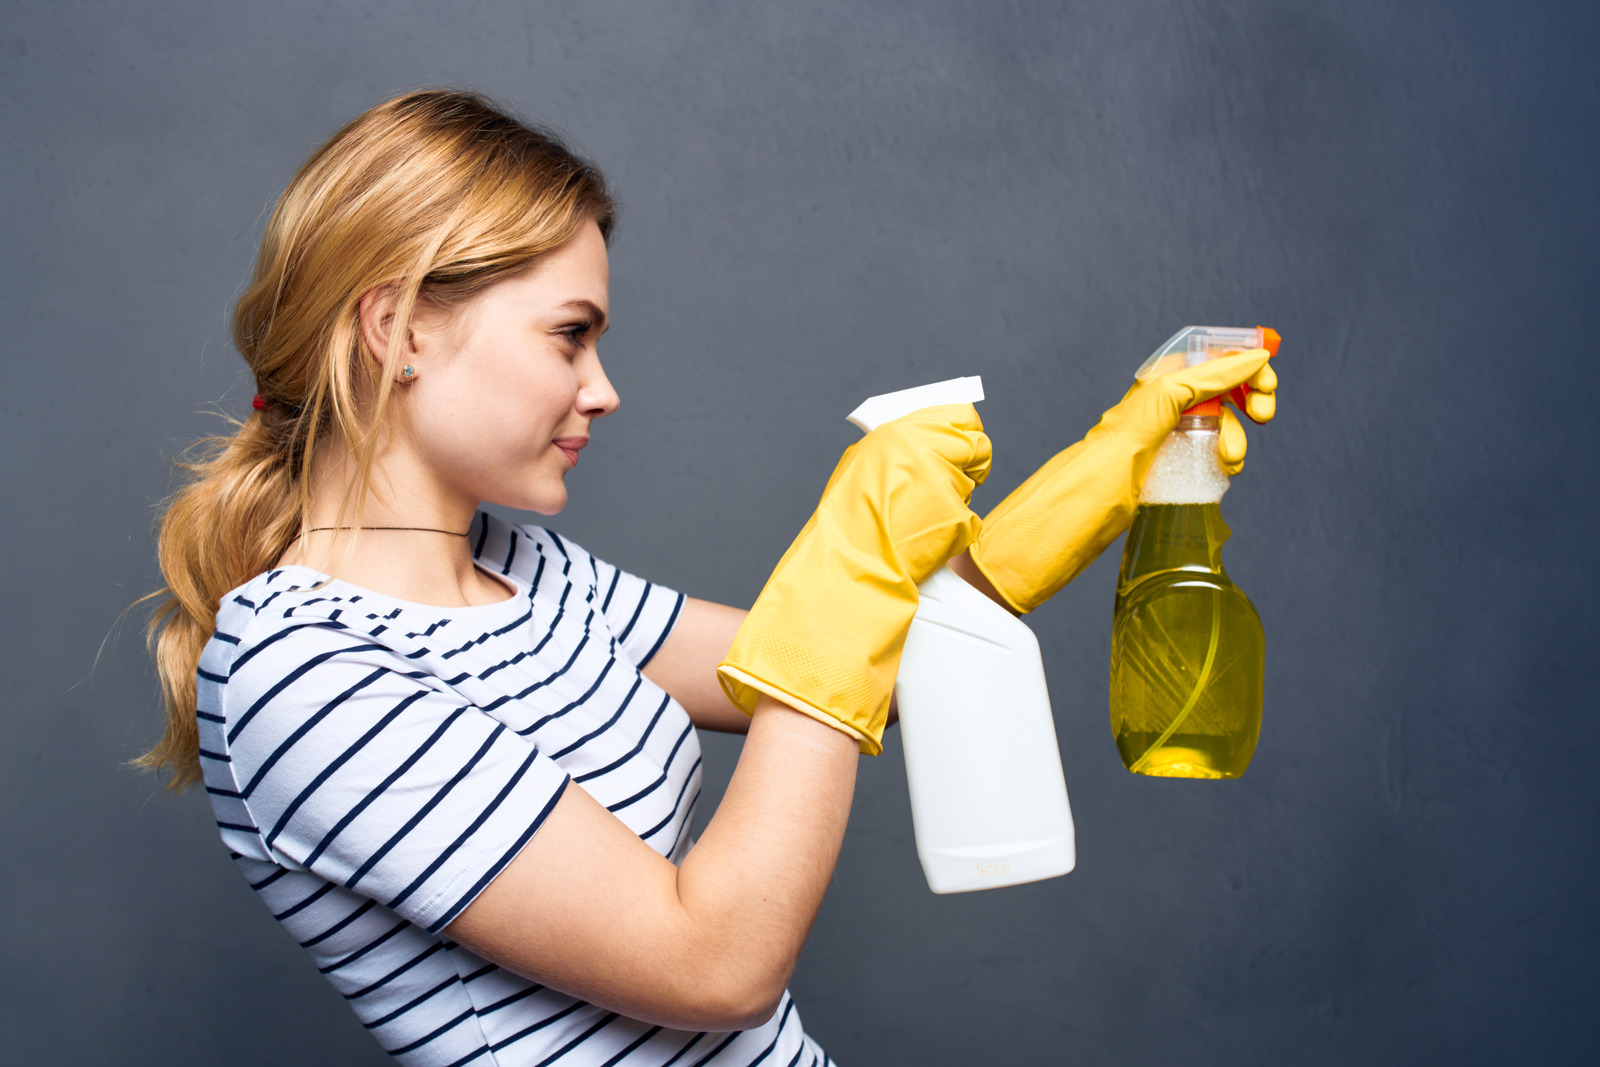 Choosing the Right Cleaning Products